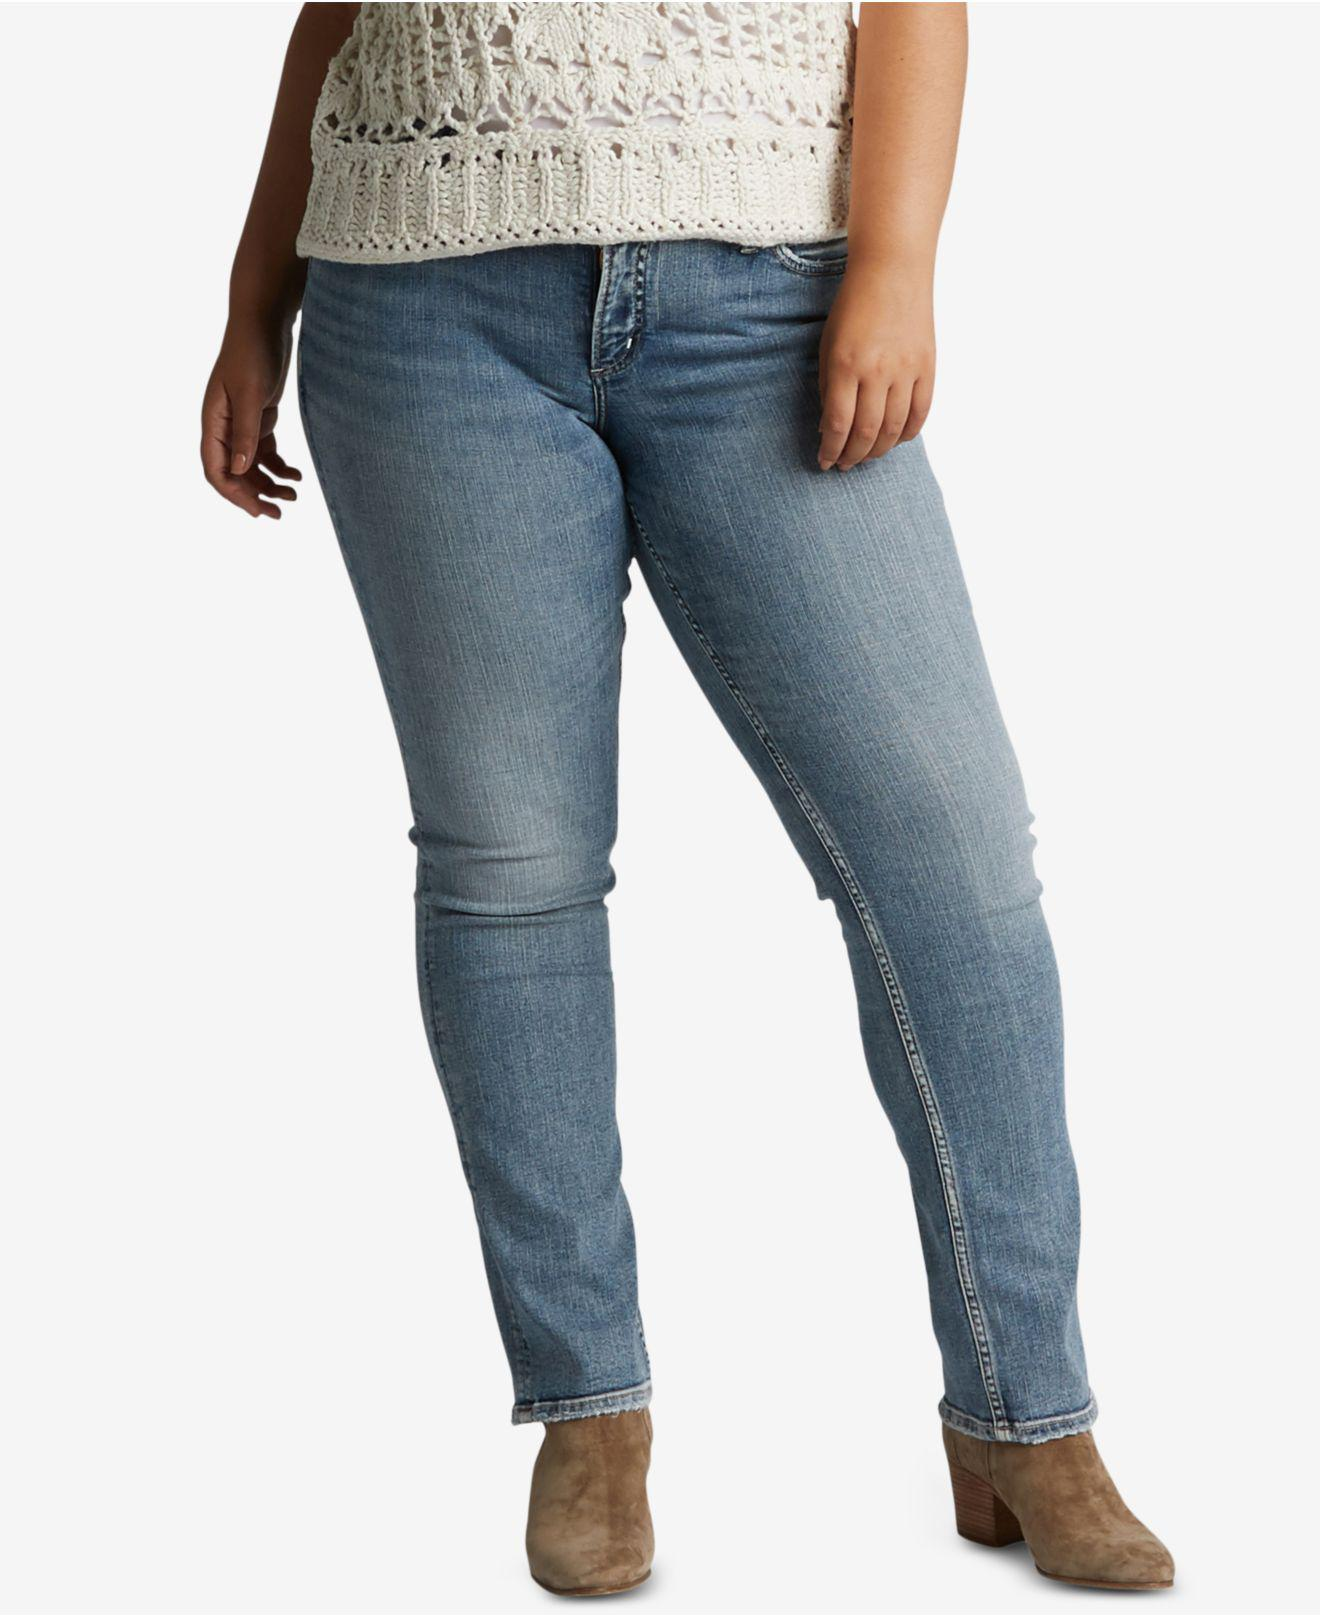 7380701a2d3 Lyst - Silver Jeans Co. Plus Size Suki Straight-leg Jeans in Blue